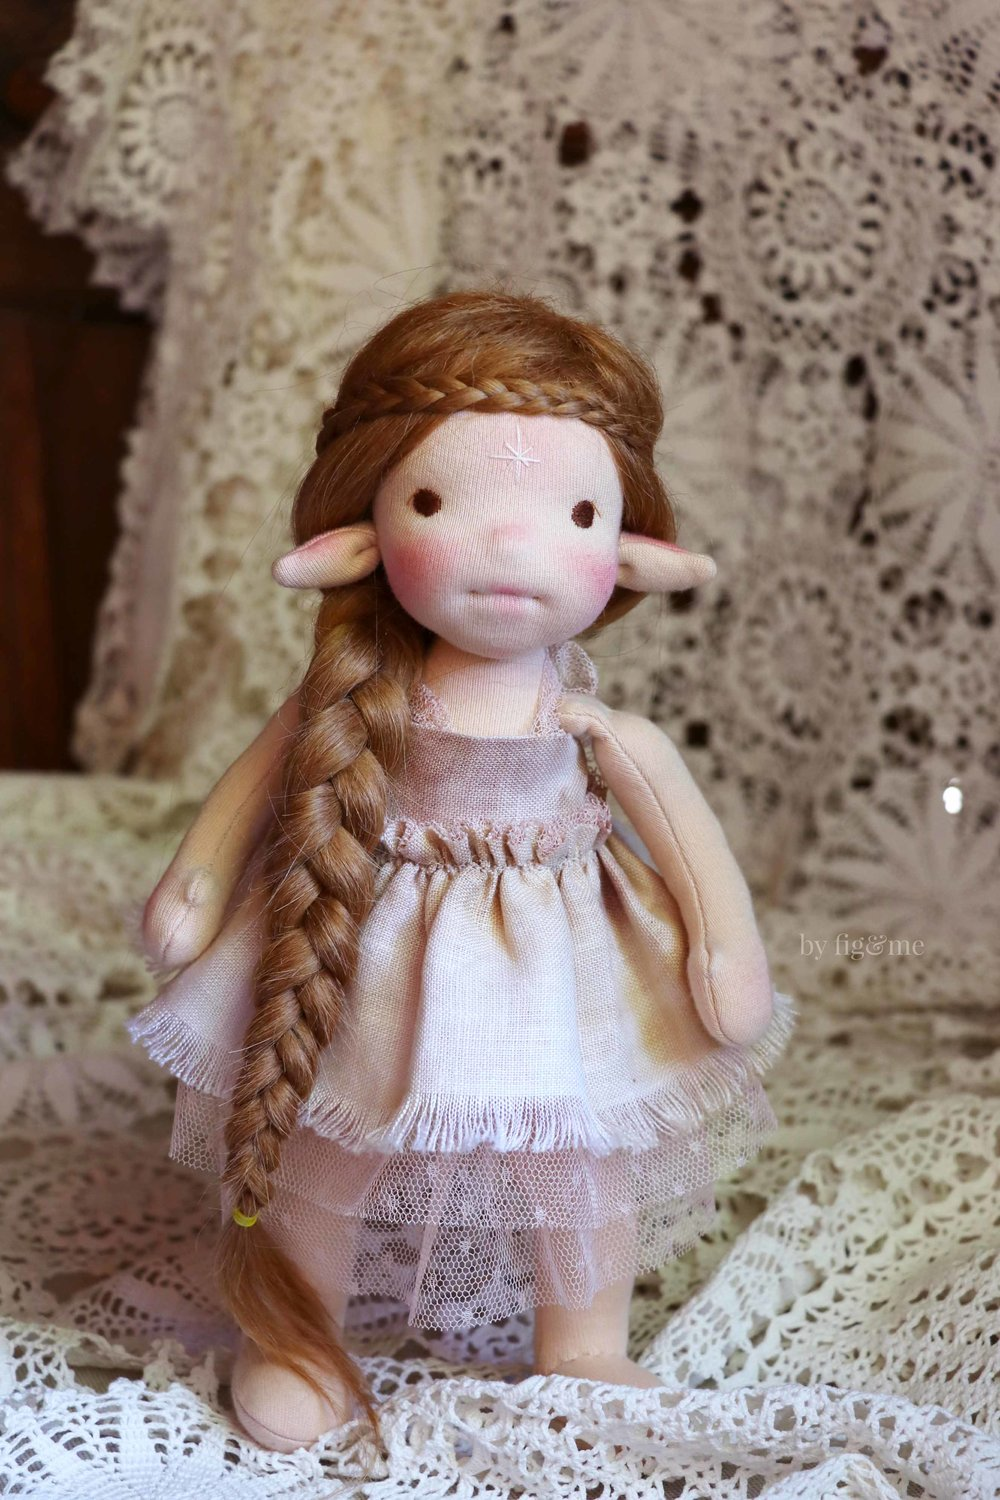 Take an online doll making class with Fabs from Fig and Me.